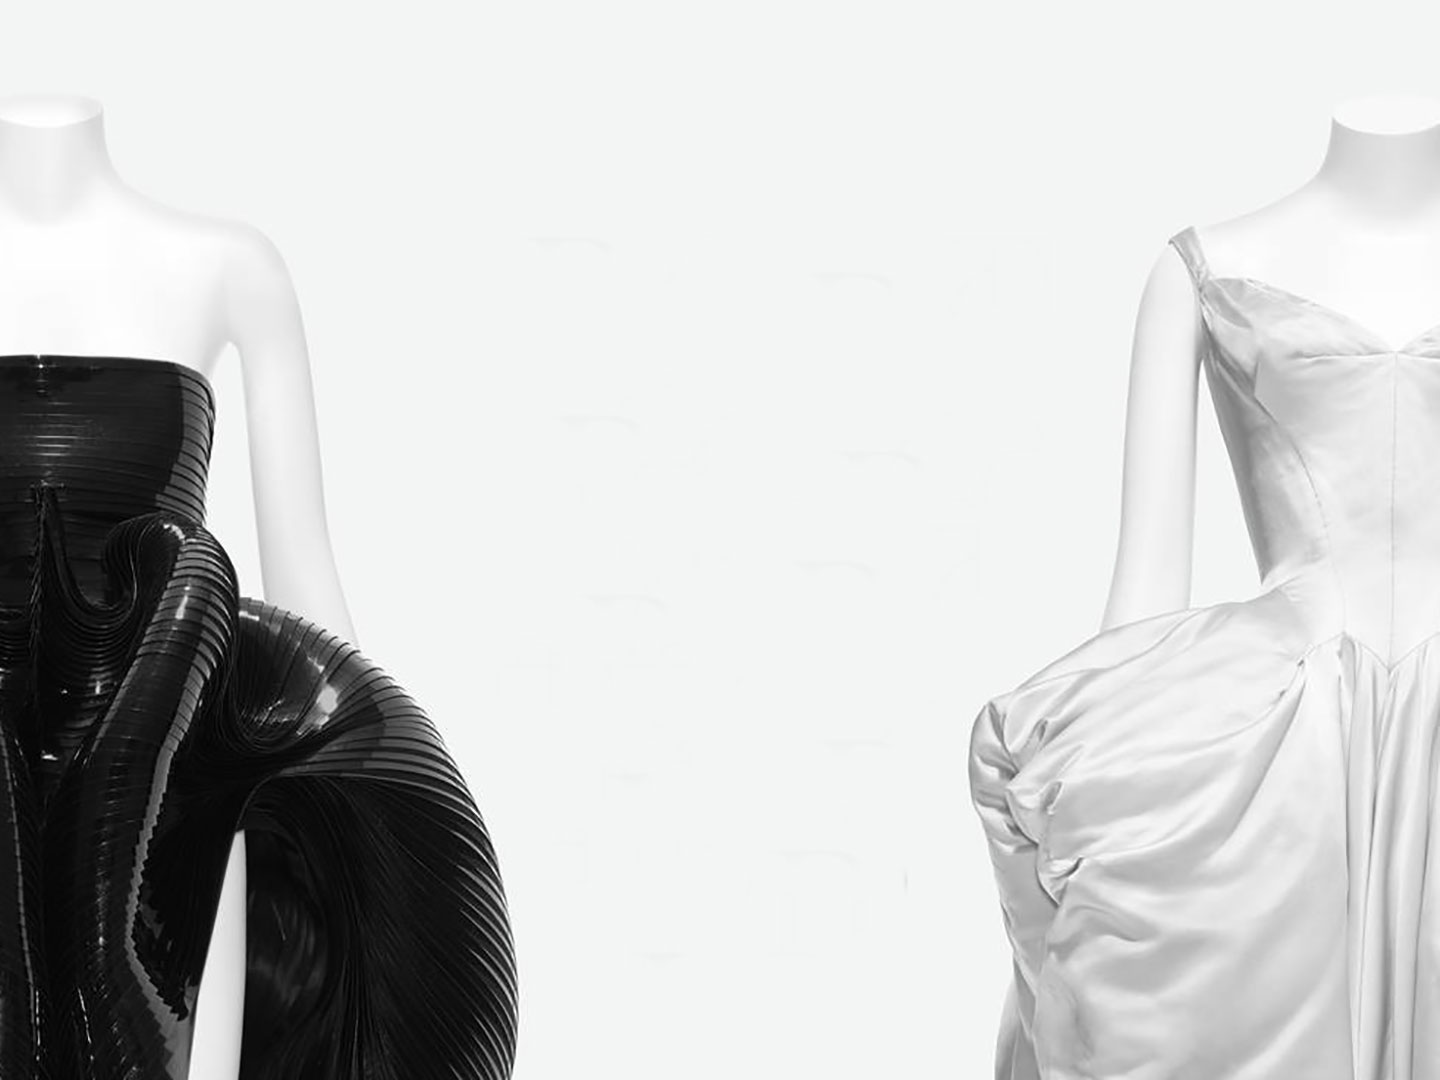 A black outfit and a white outfit on mannequins on a grey background.